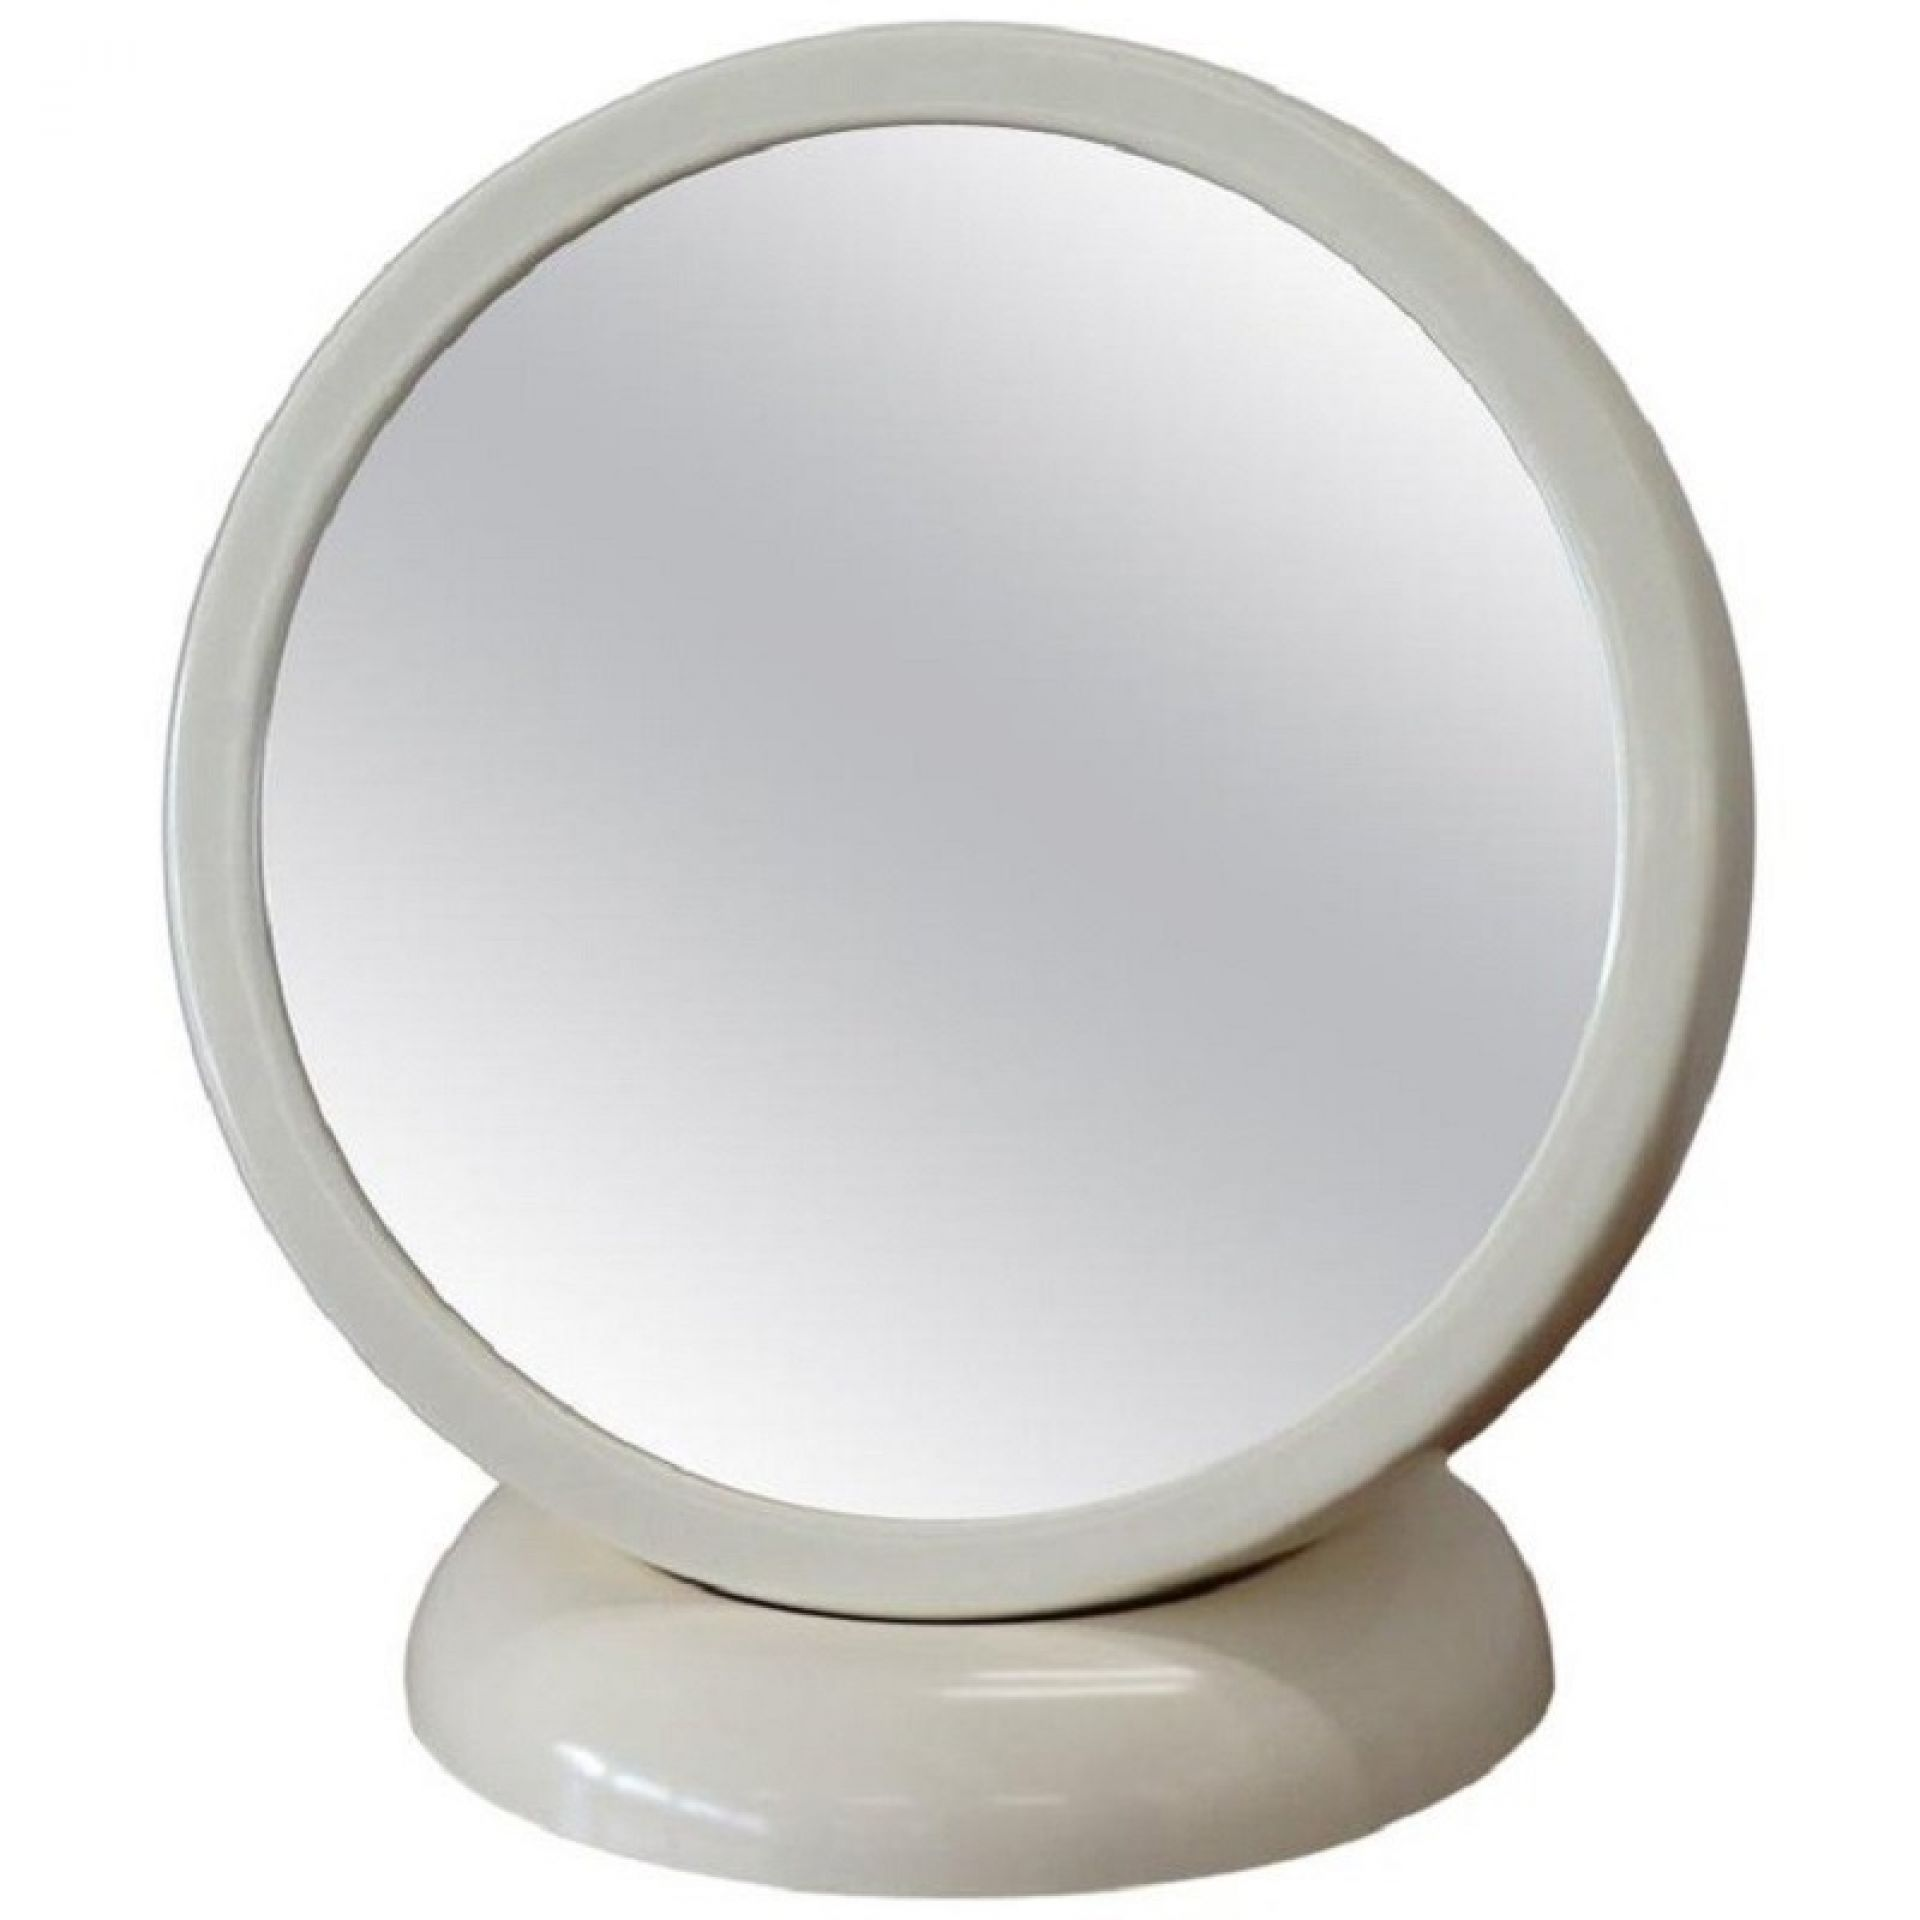 20th Century Italian Design Table Mirror in Fiberglass by Filippo Panseca, 1968s